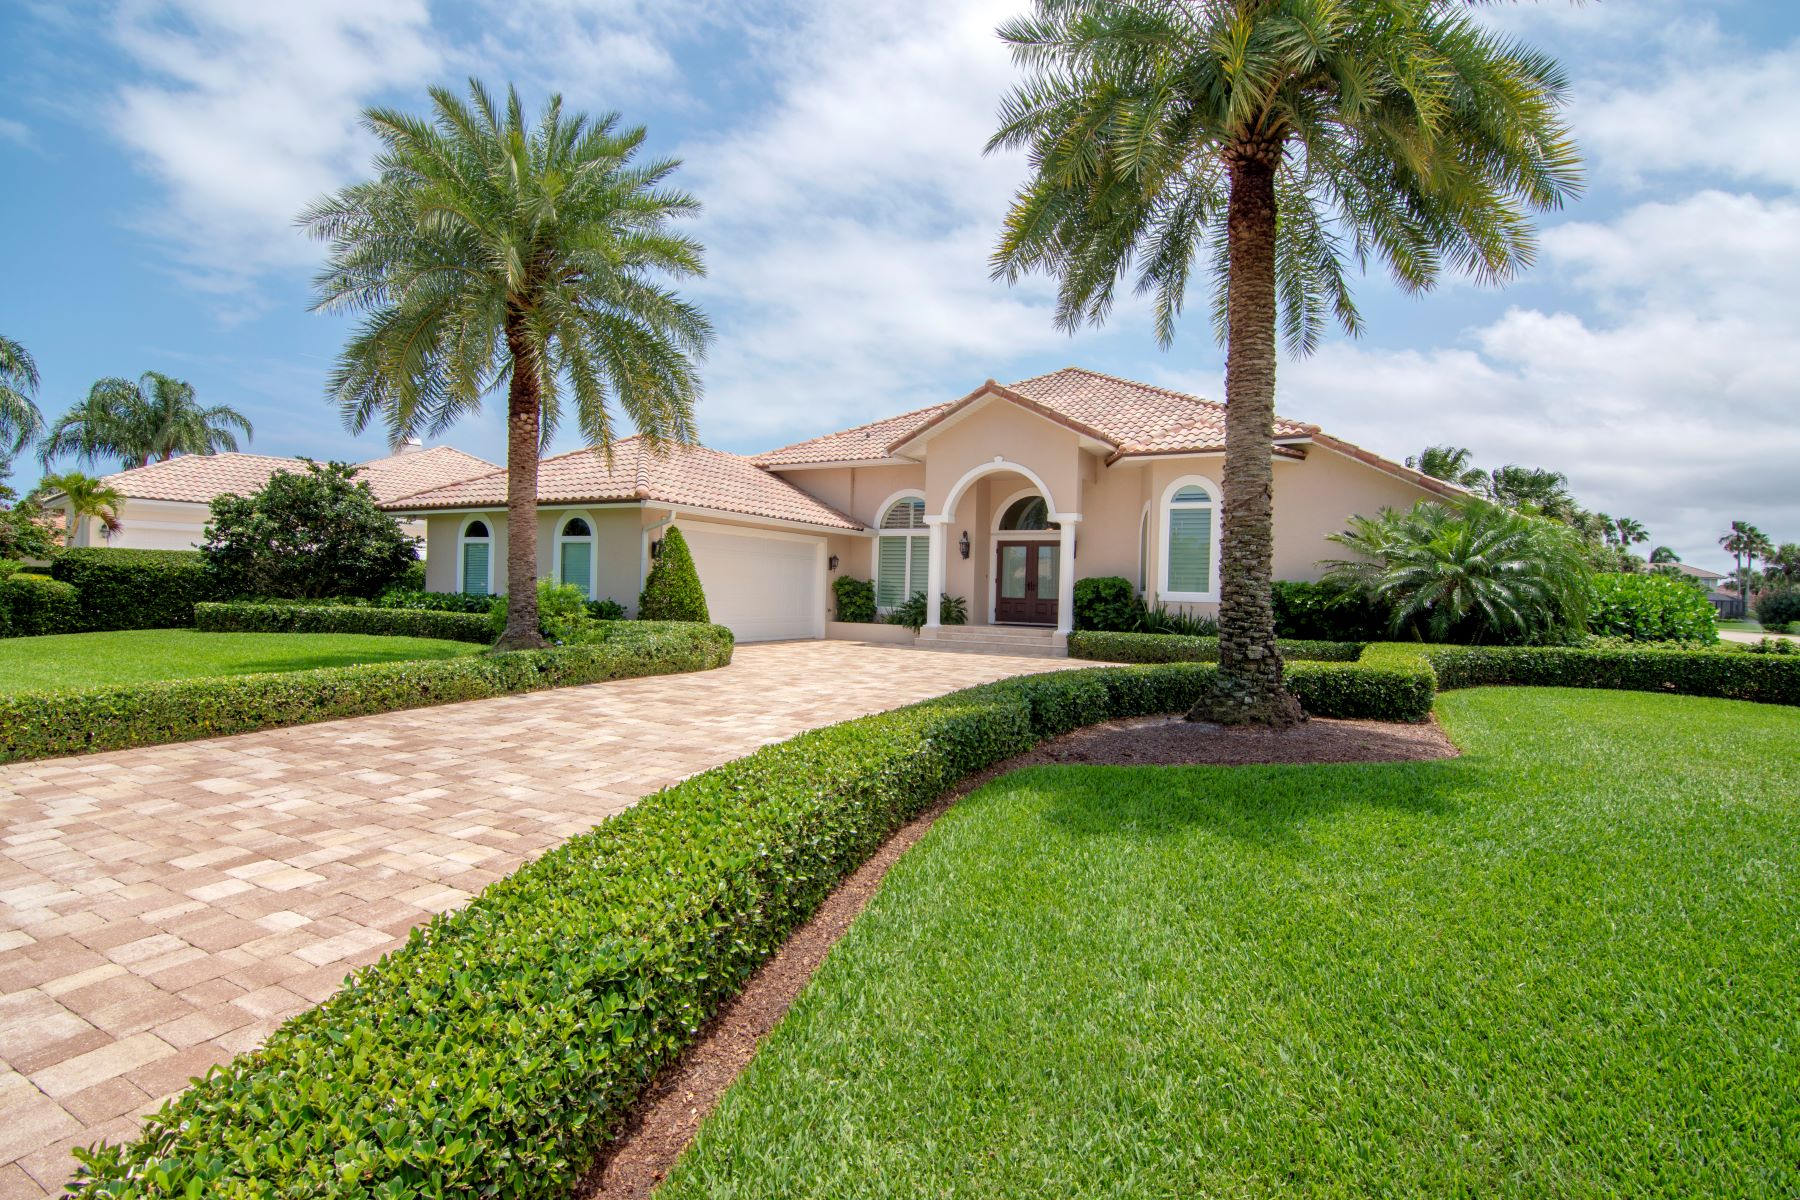 Single Family Homes for Sale at 1755 Majorca Place Vero Beach, Florida 32967 United States